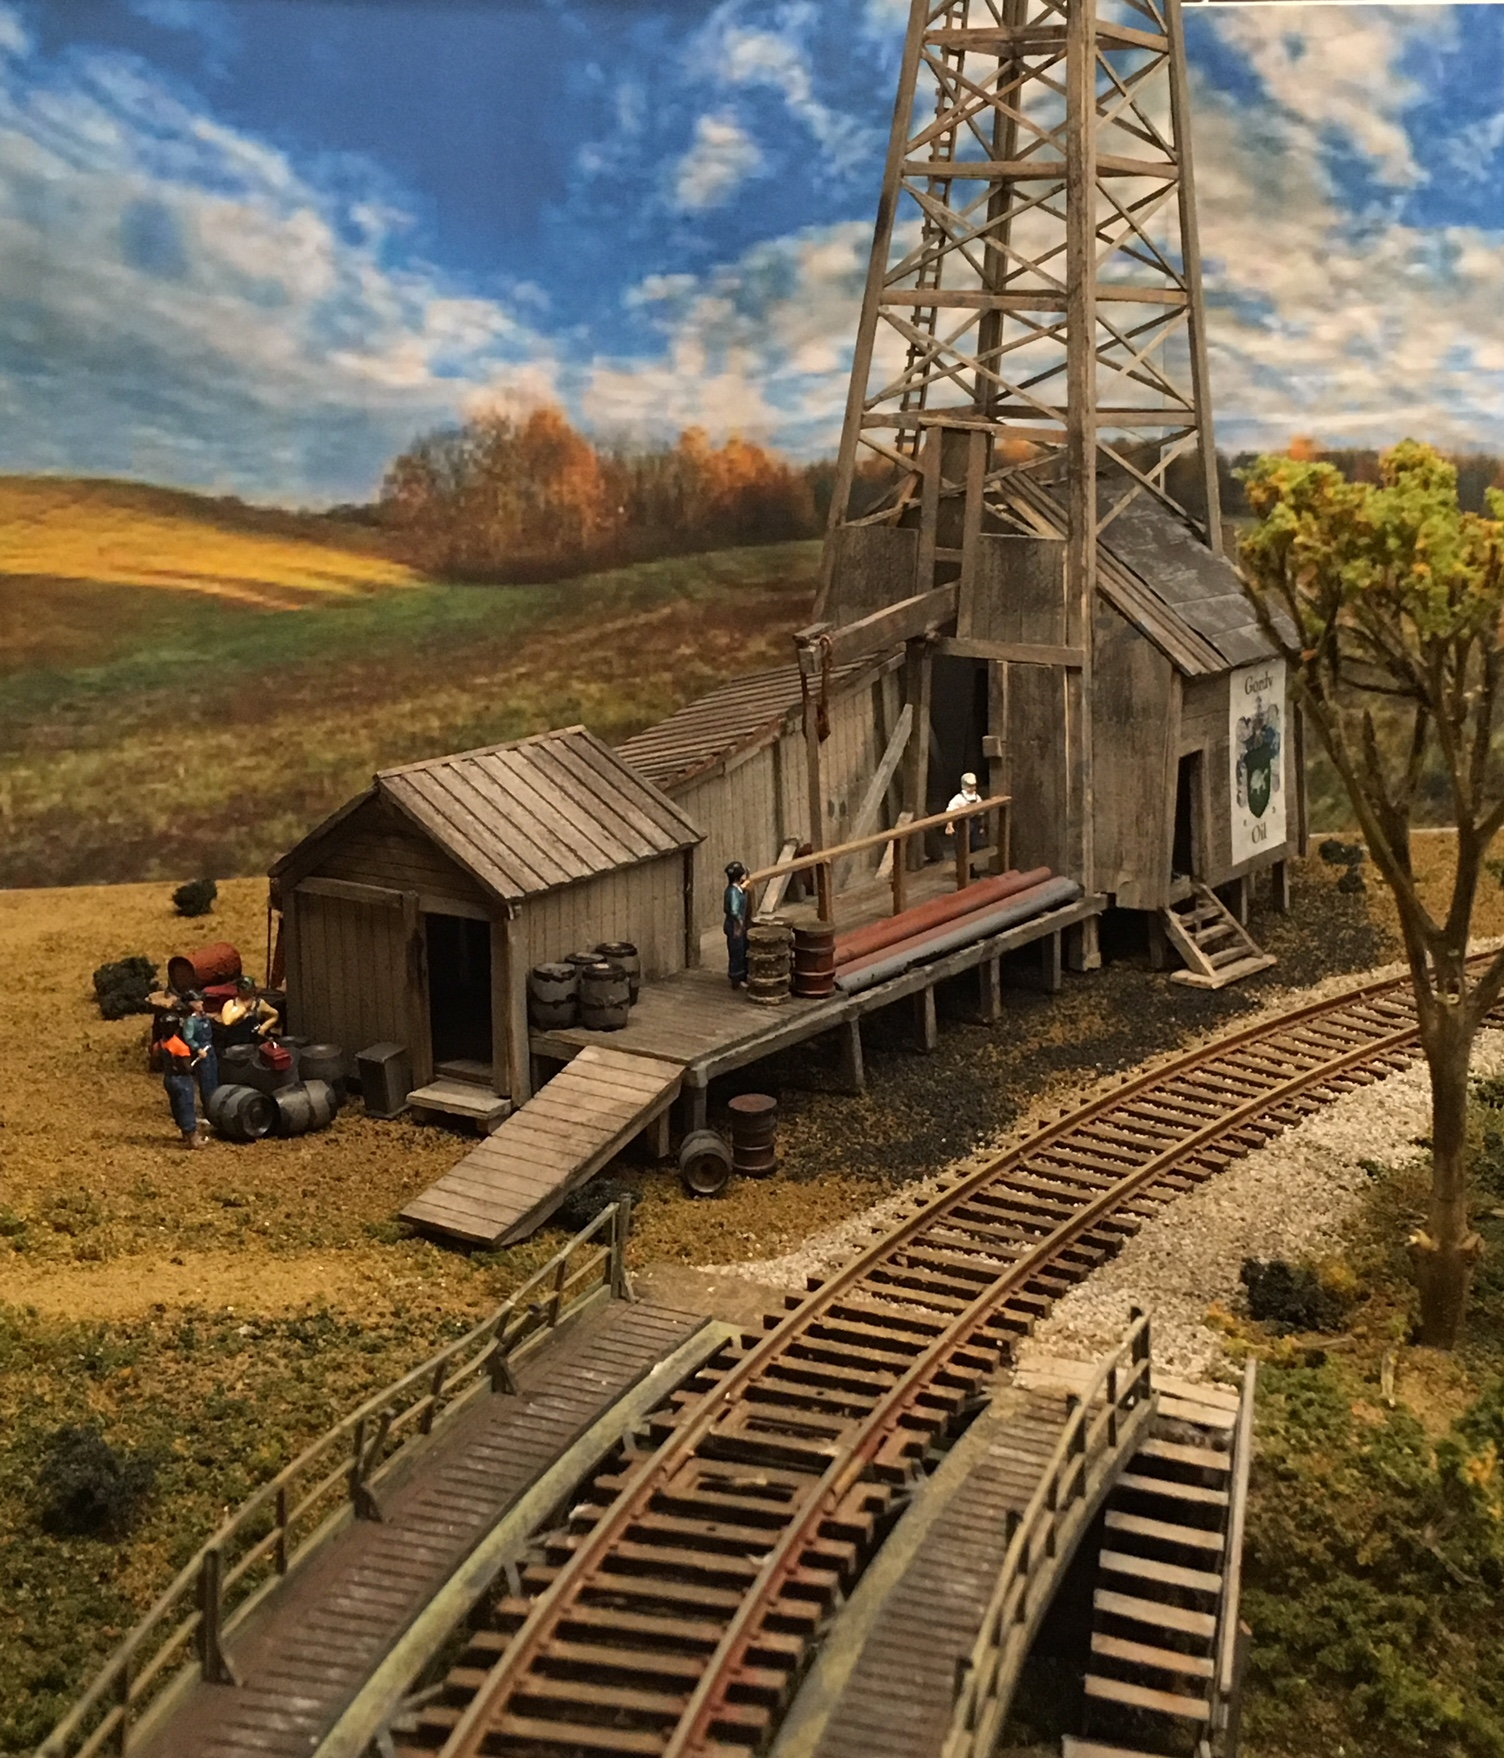 HO scale 4x8 model railroad